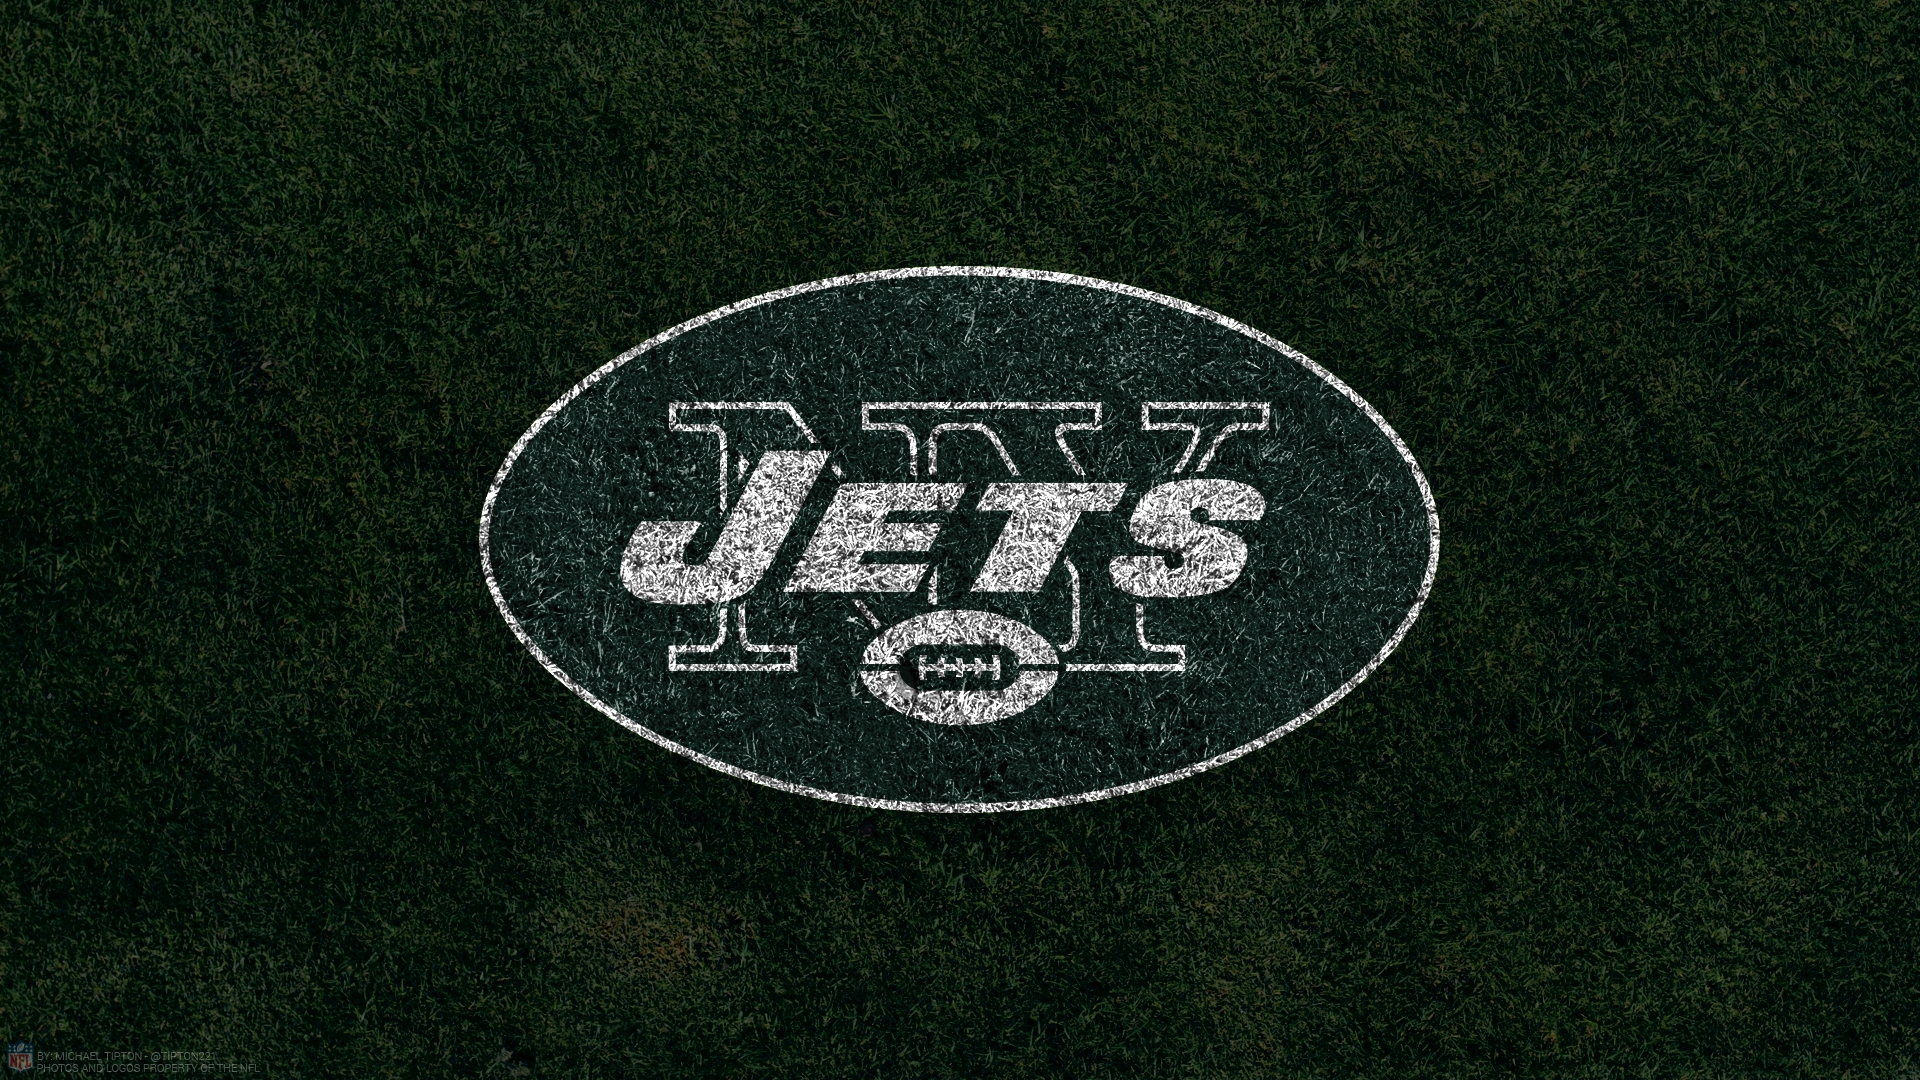 2018 new york jets wallpapers - pc  iphone  android